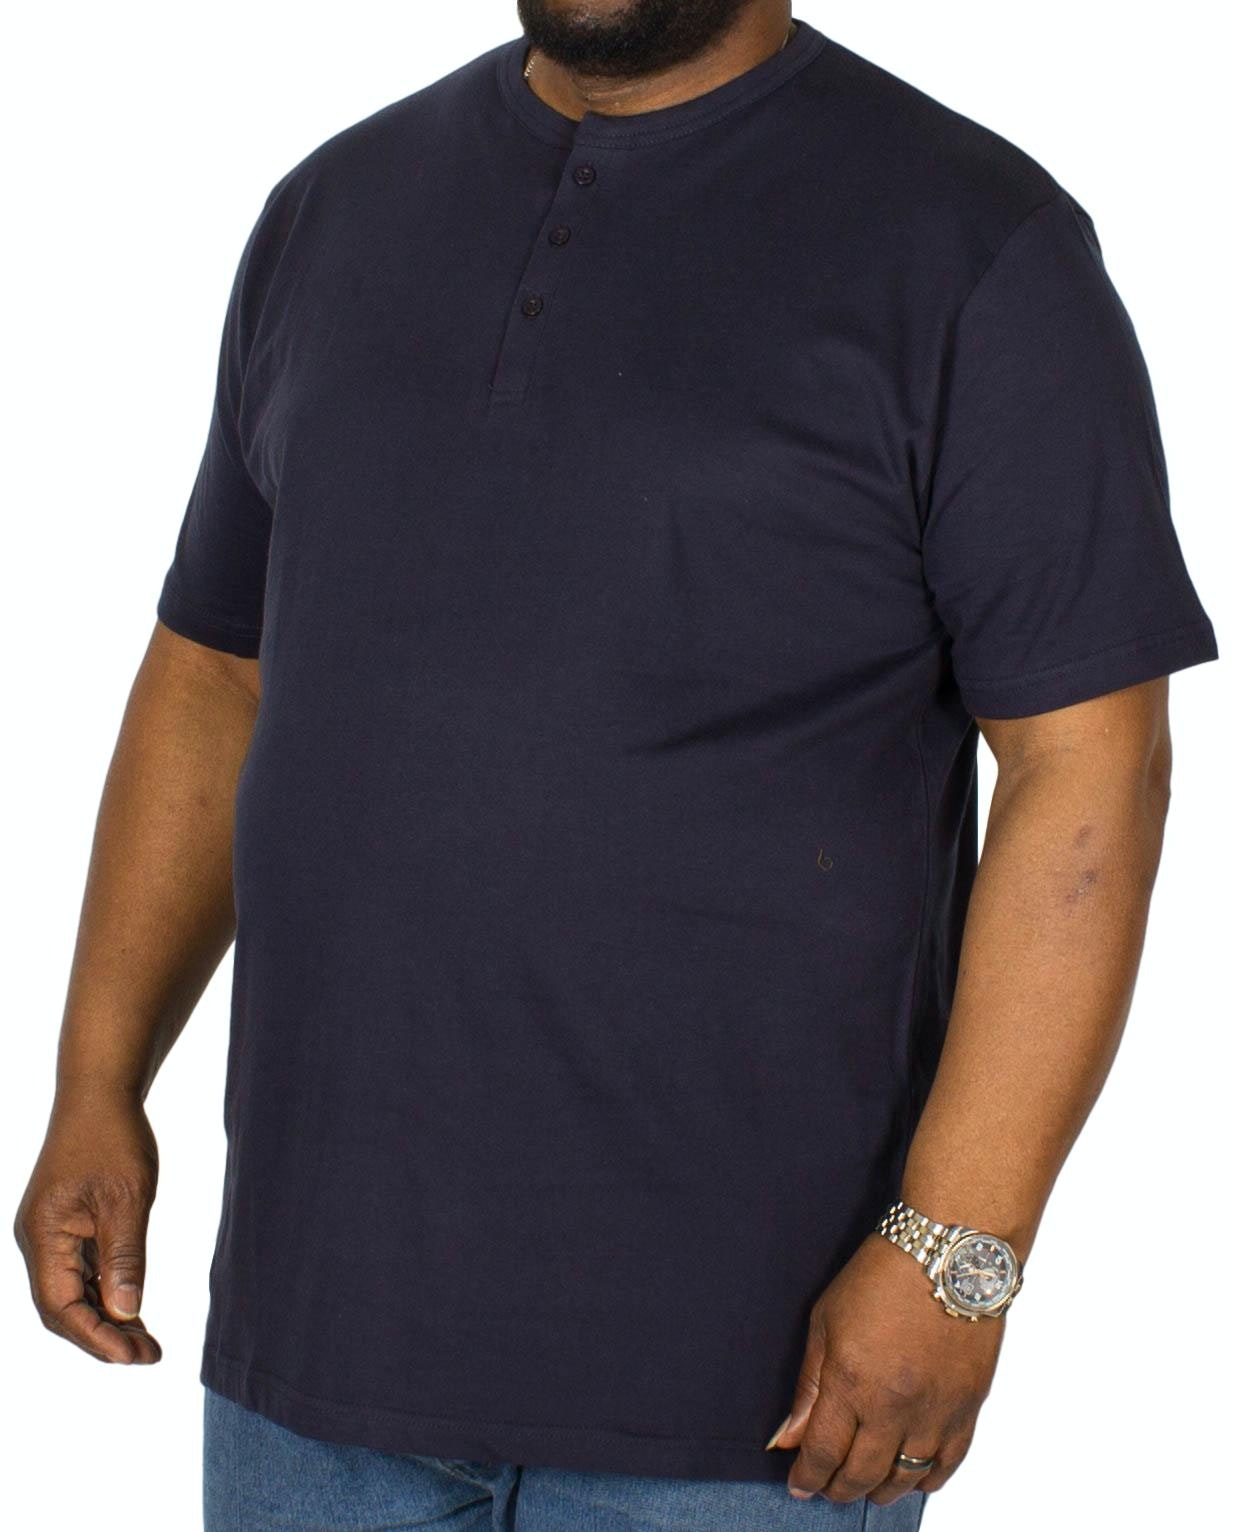 Bigdude Grandad T-Shirt Navy Tall